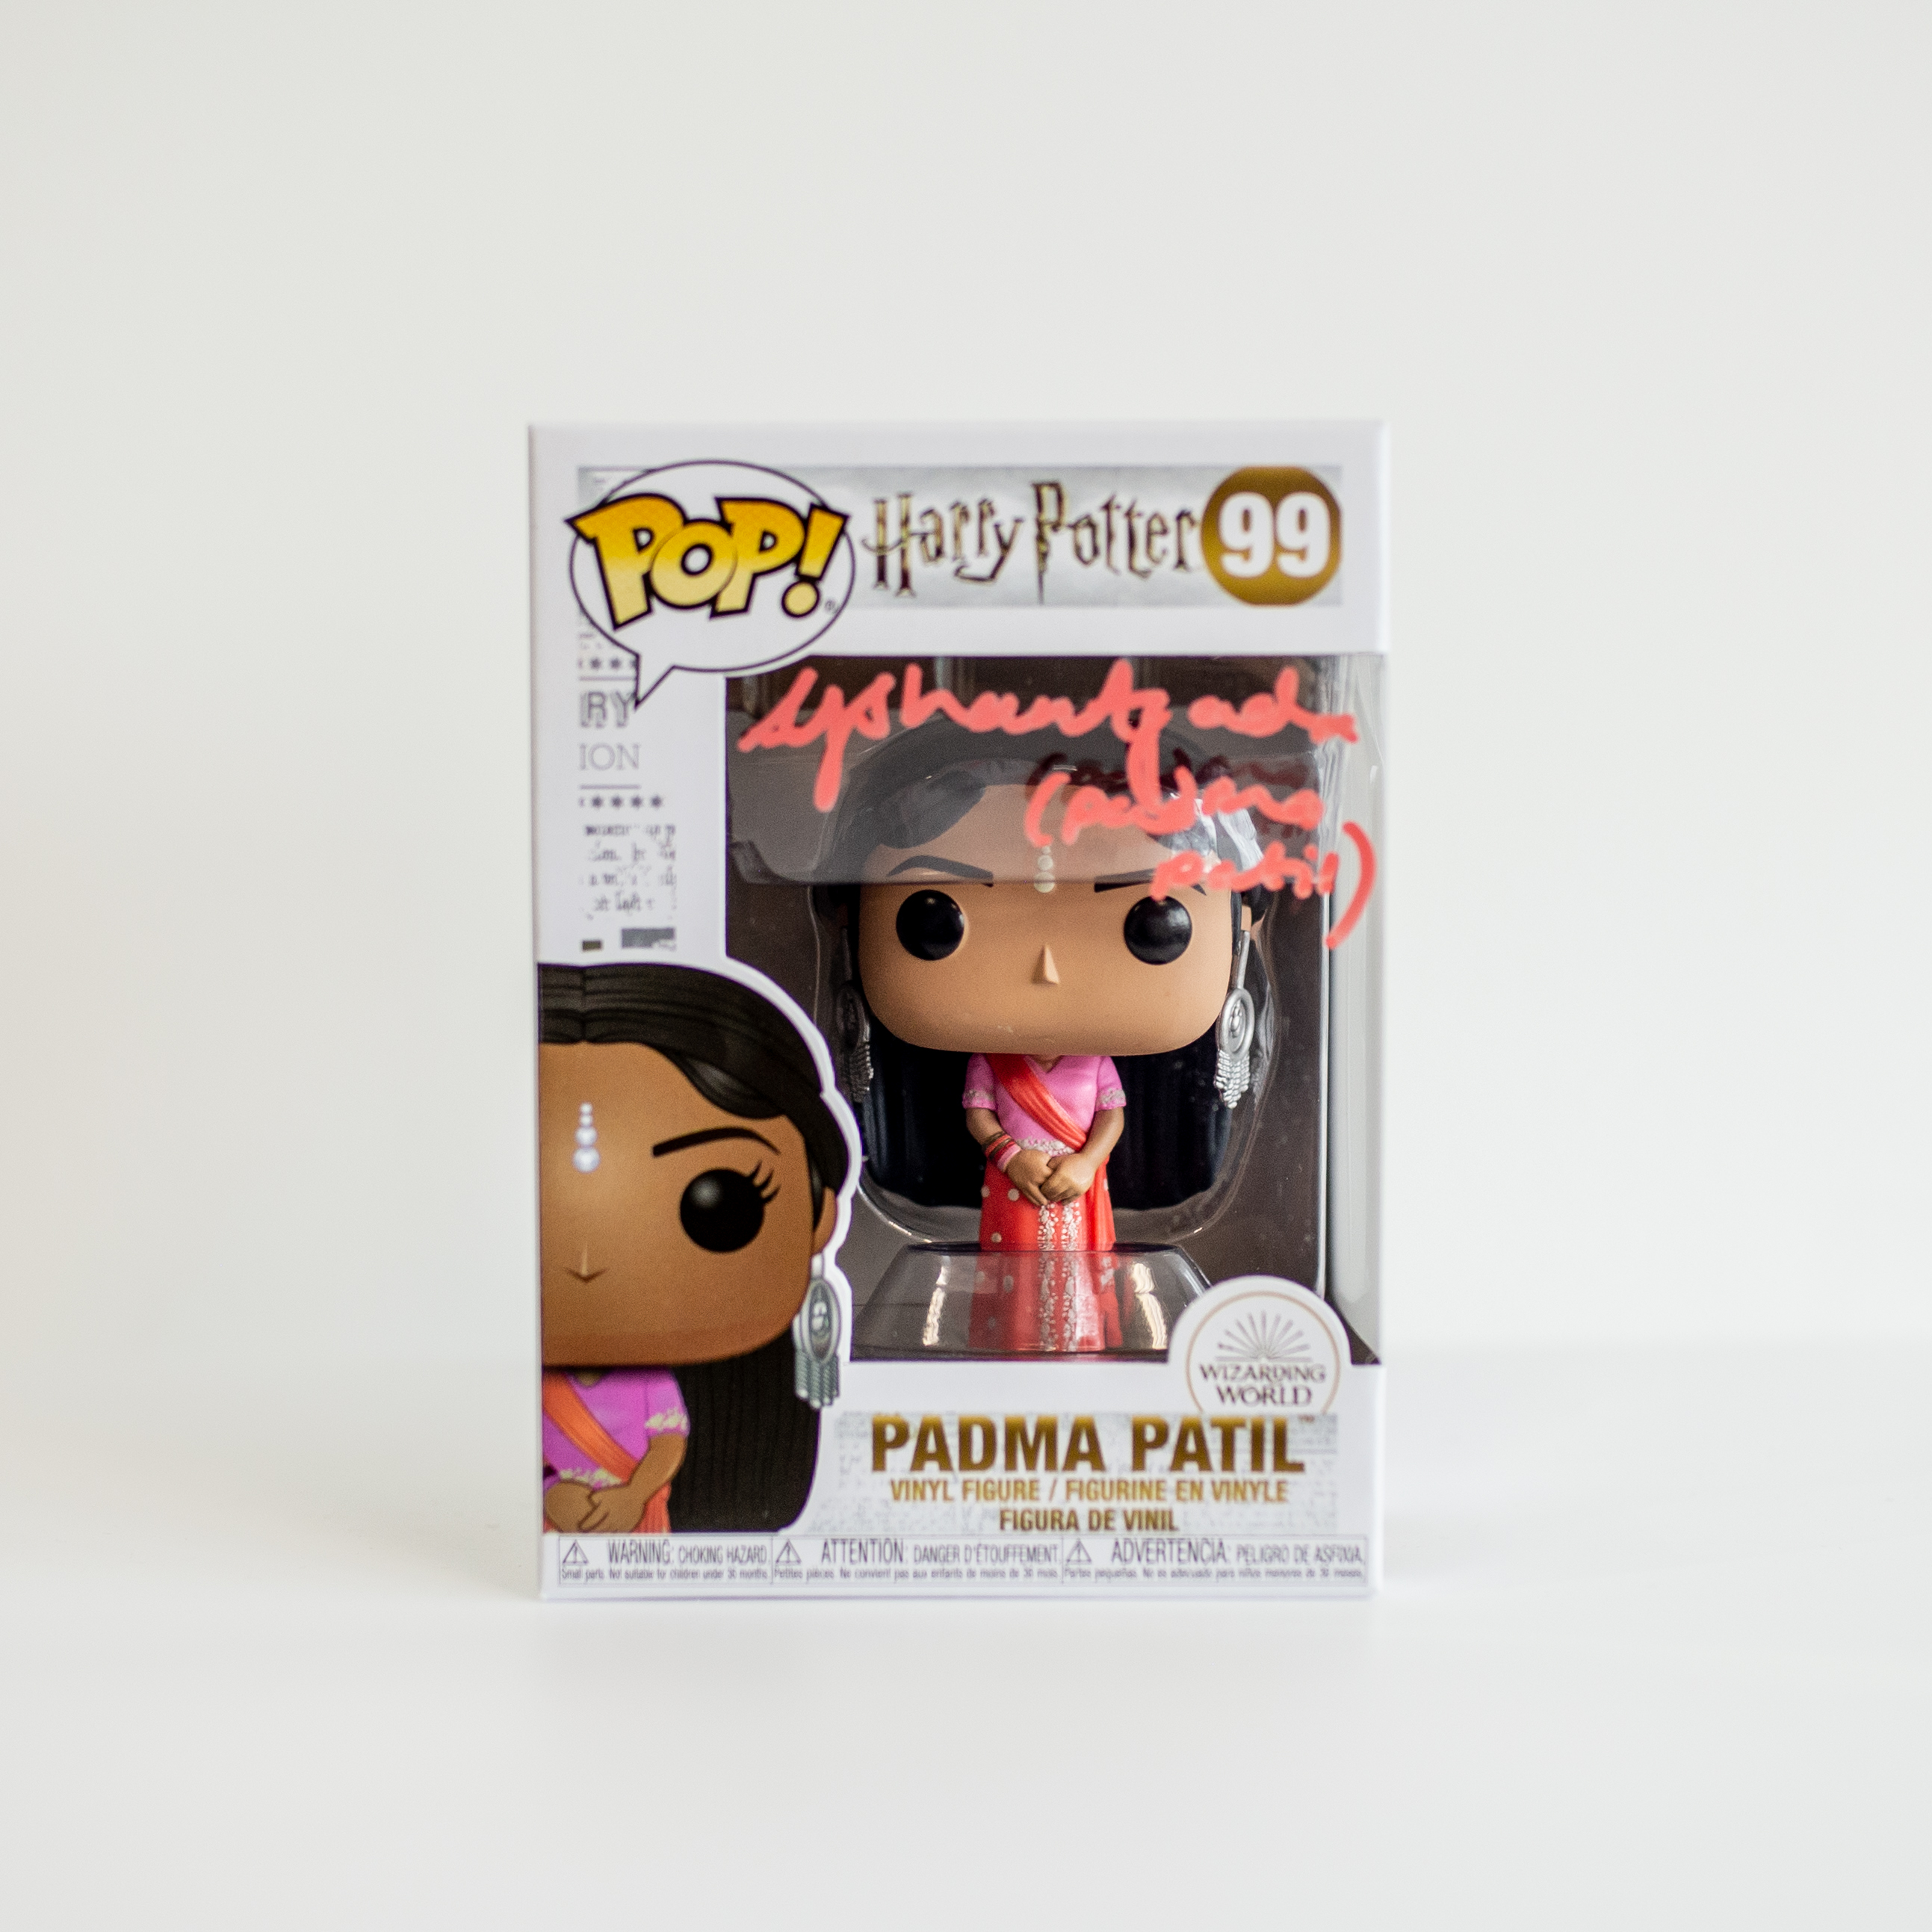 Afshan Azad Original Autogramm auf Funko POP! Harry Potter - Padma Patil (Pinke Signatur)